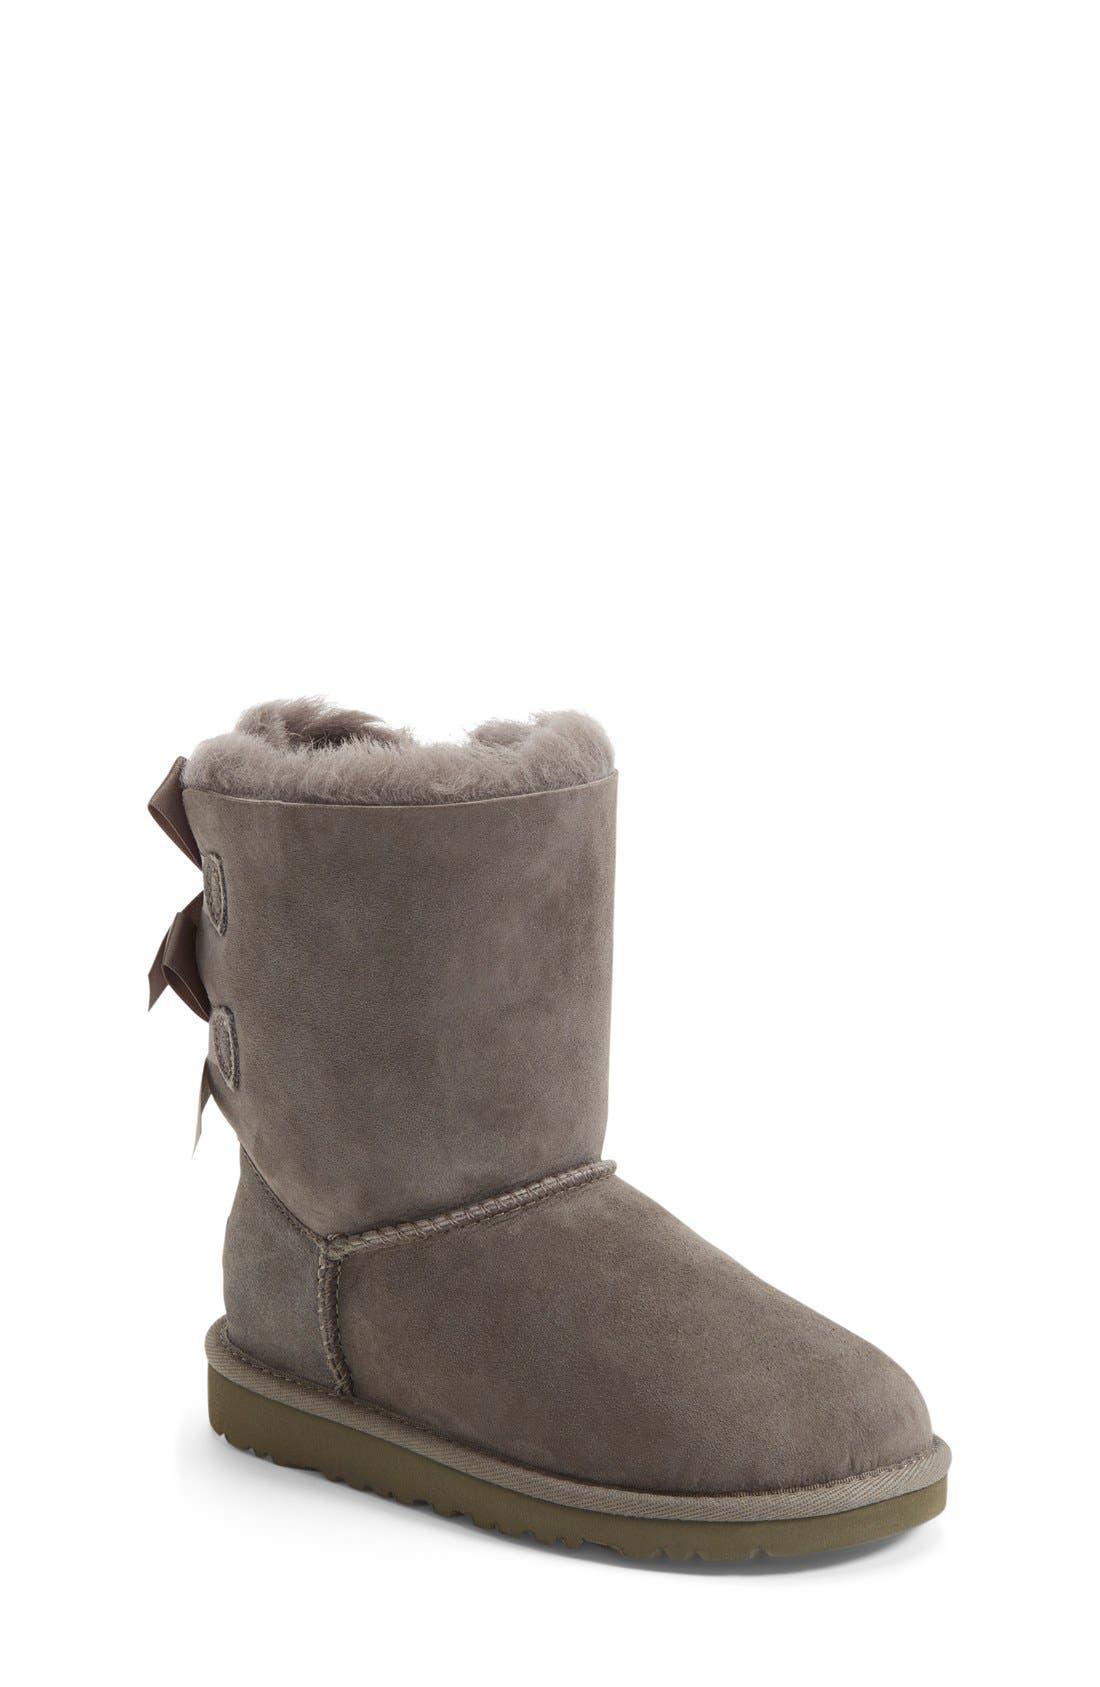 Alternate Image 1 Selected - UGG® Bailey Bow Boot (Walker, Toddler, Little Kid & Big Kid)